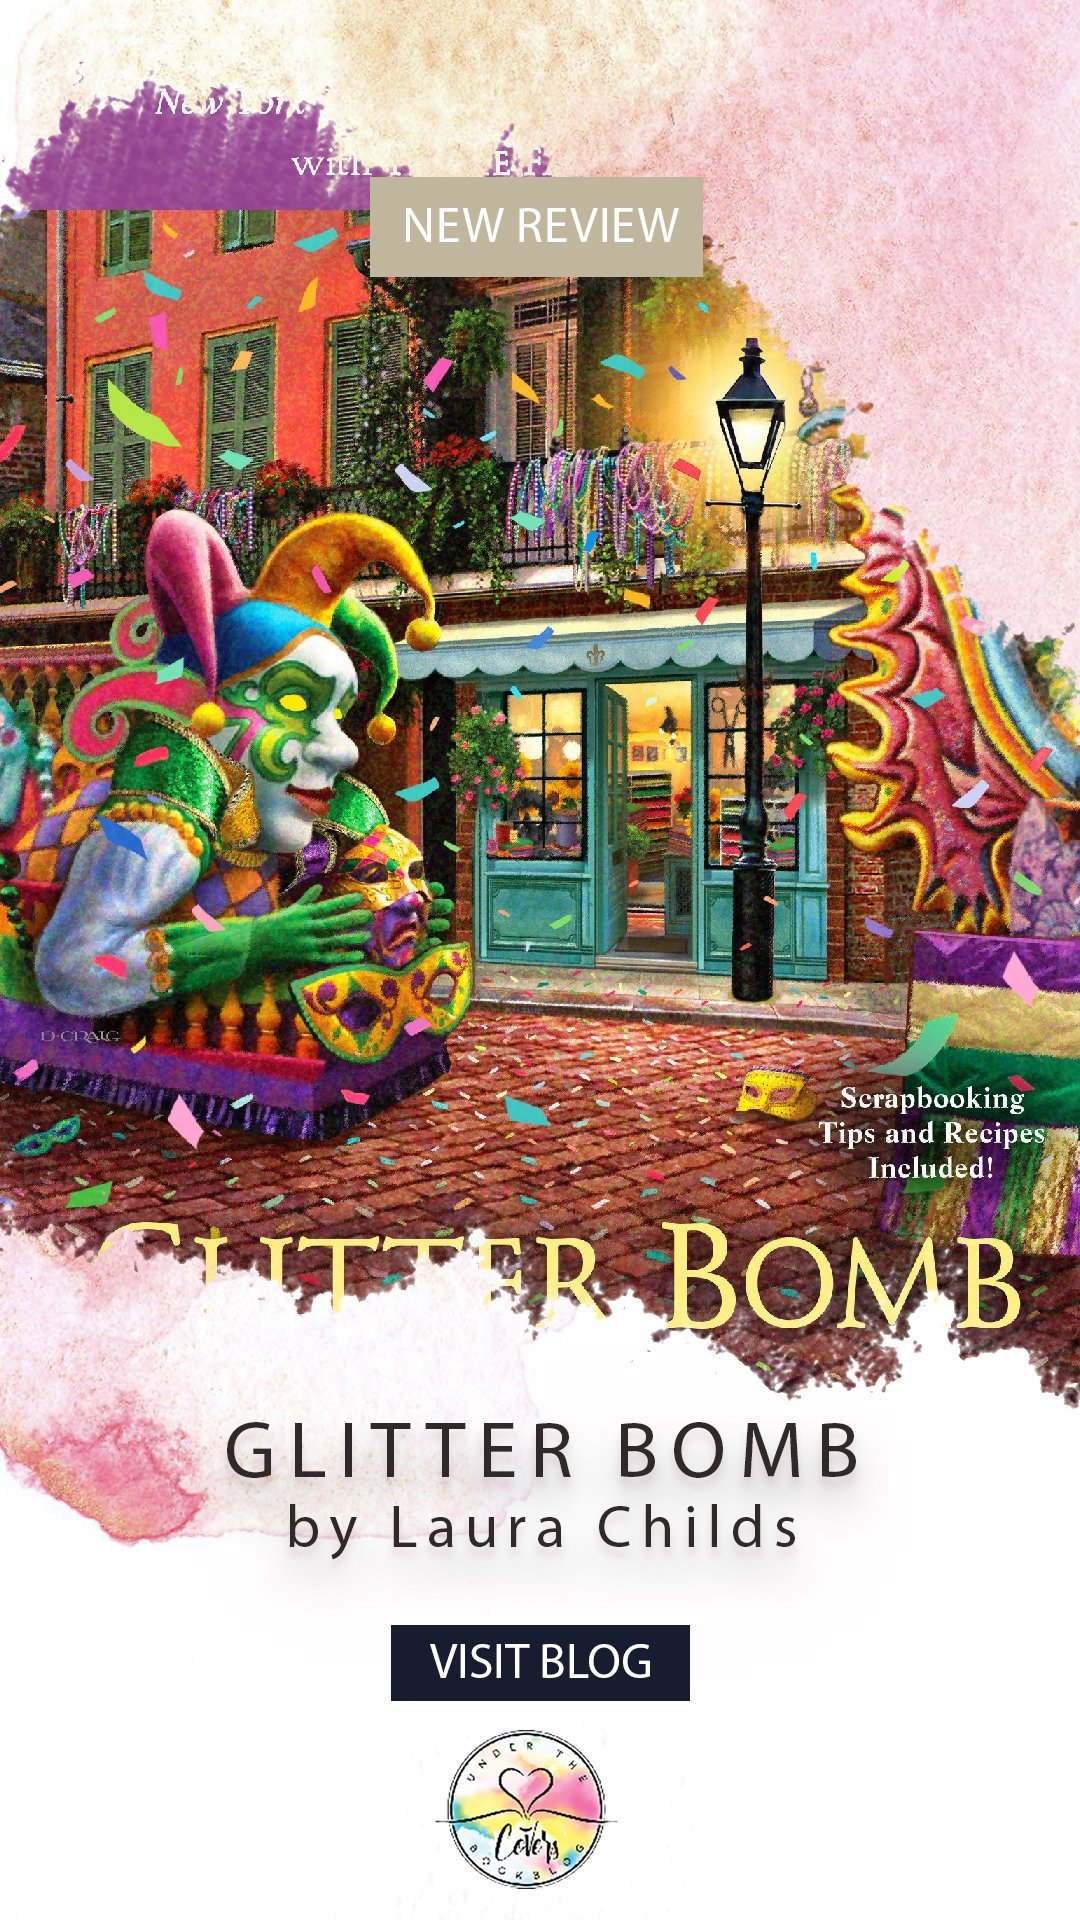 ARC Review: Glitter Bomb by Laura Childs